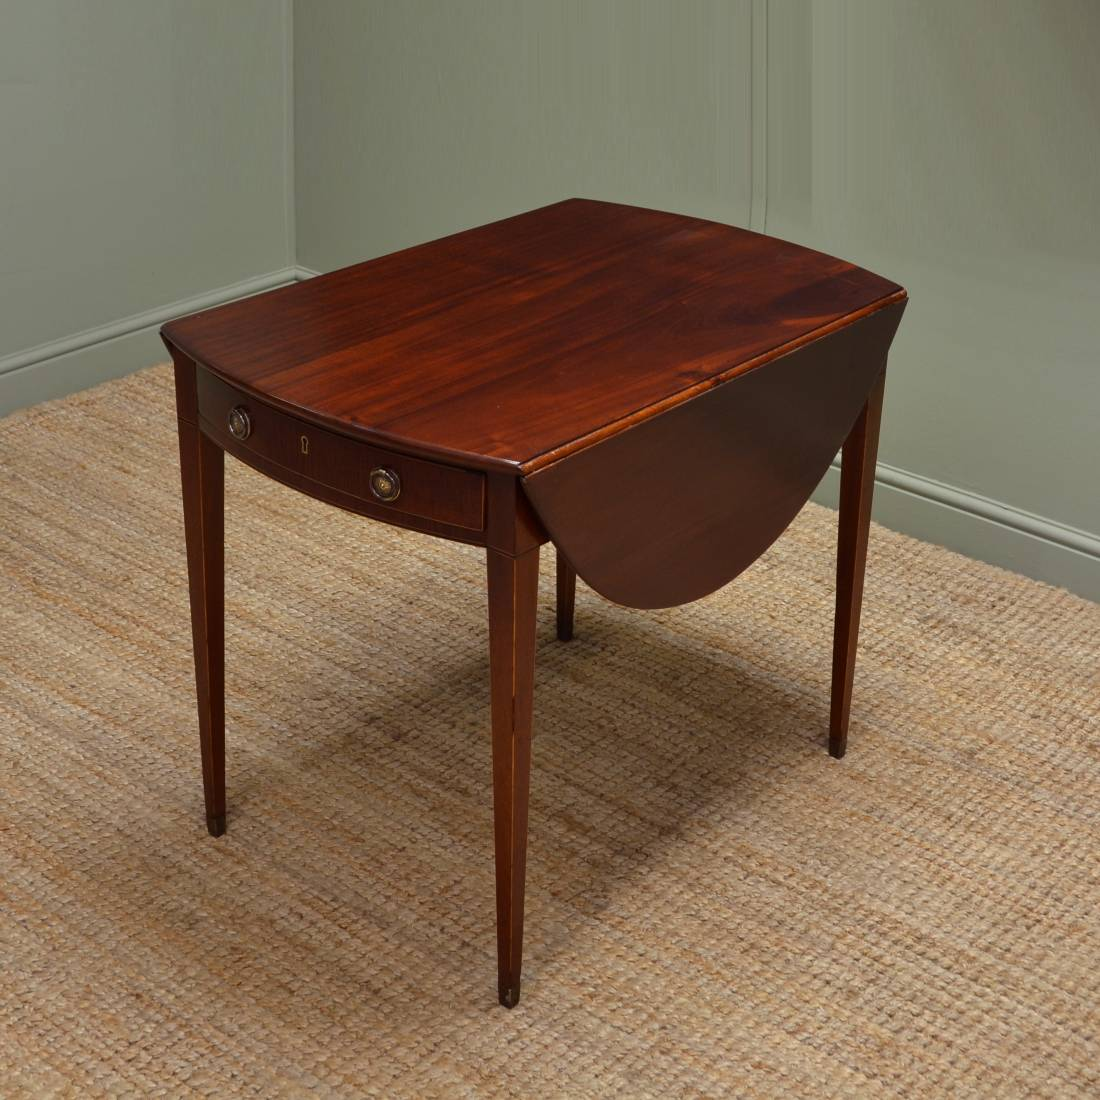 Fine regency small mahogany drop leaf dining table for Small dining table with leaf